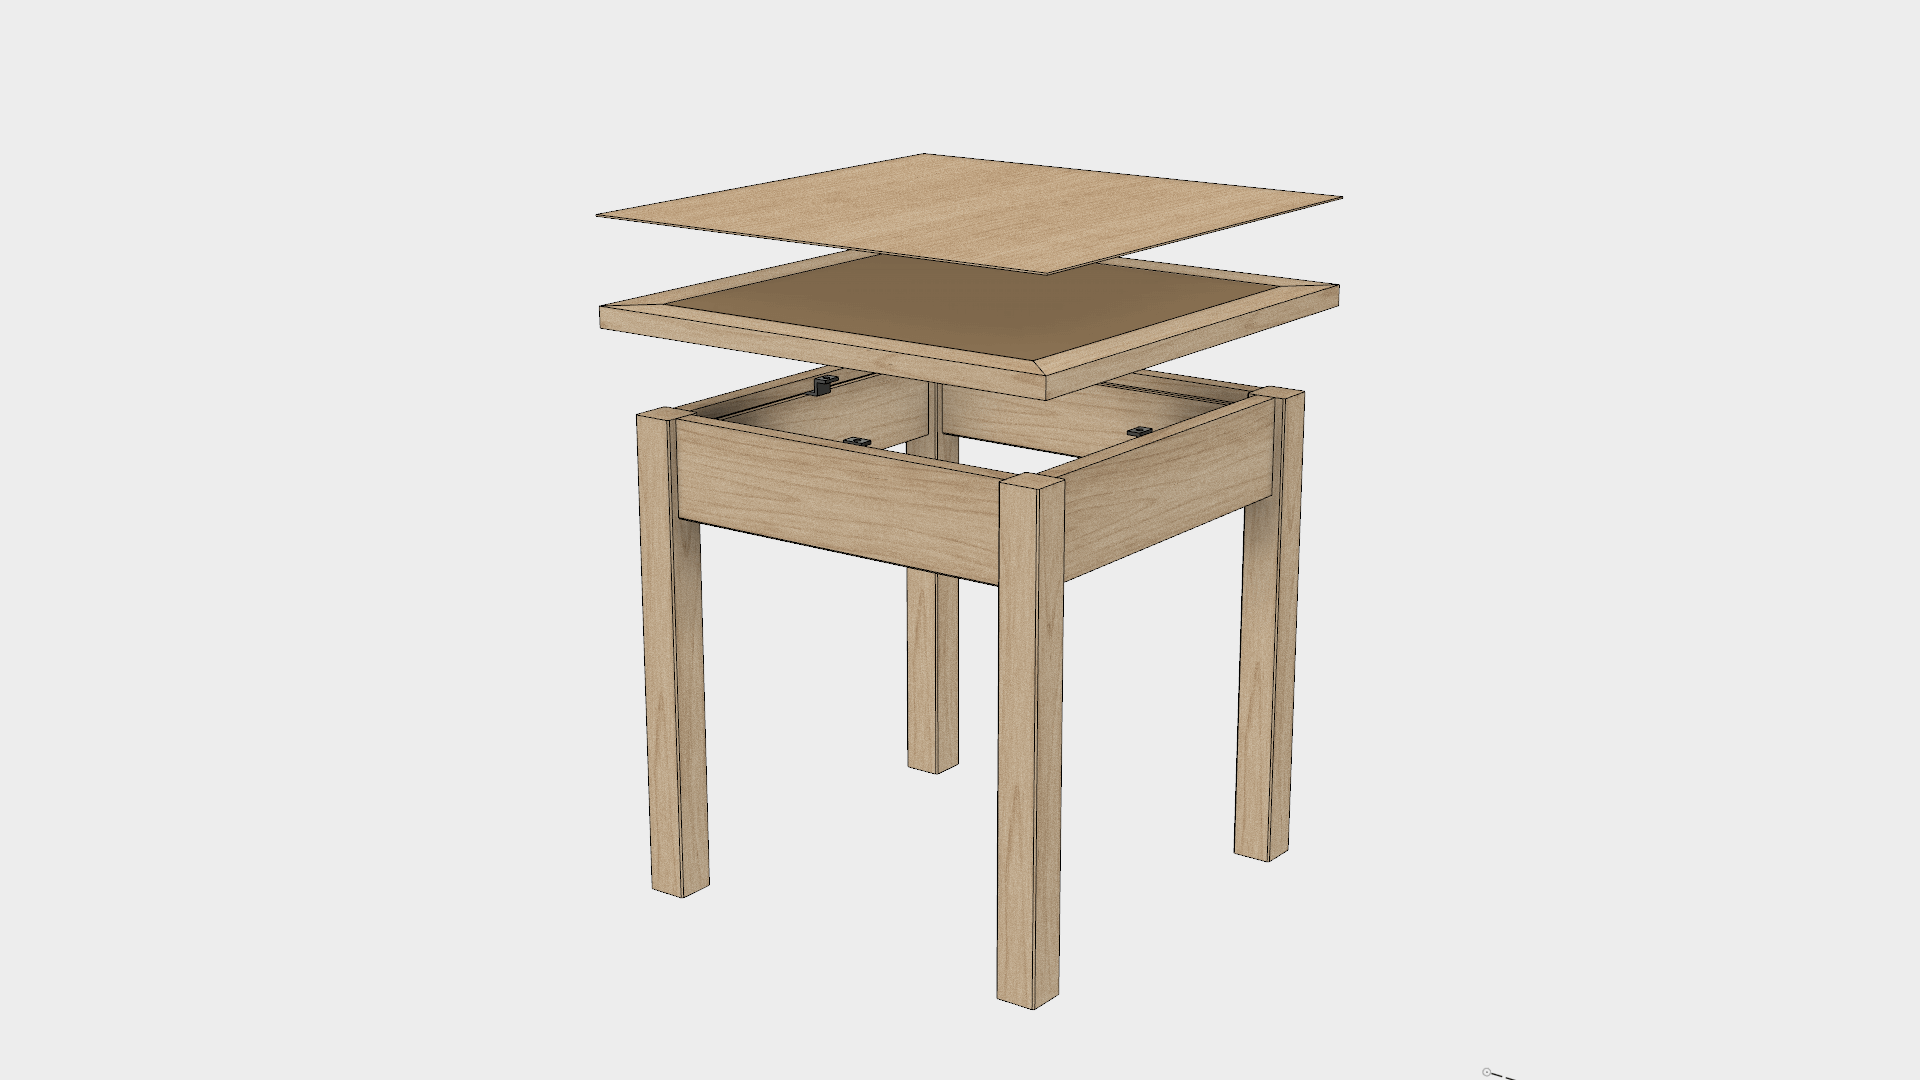 The Top 10 Design Software for Woodworking You Should  Know